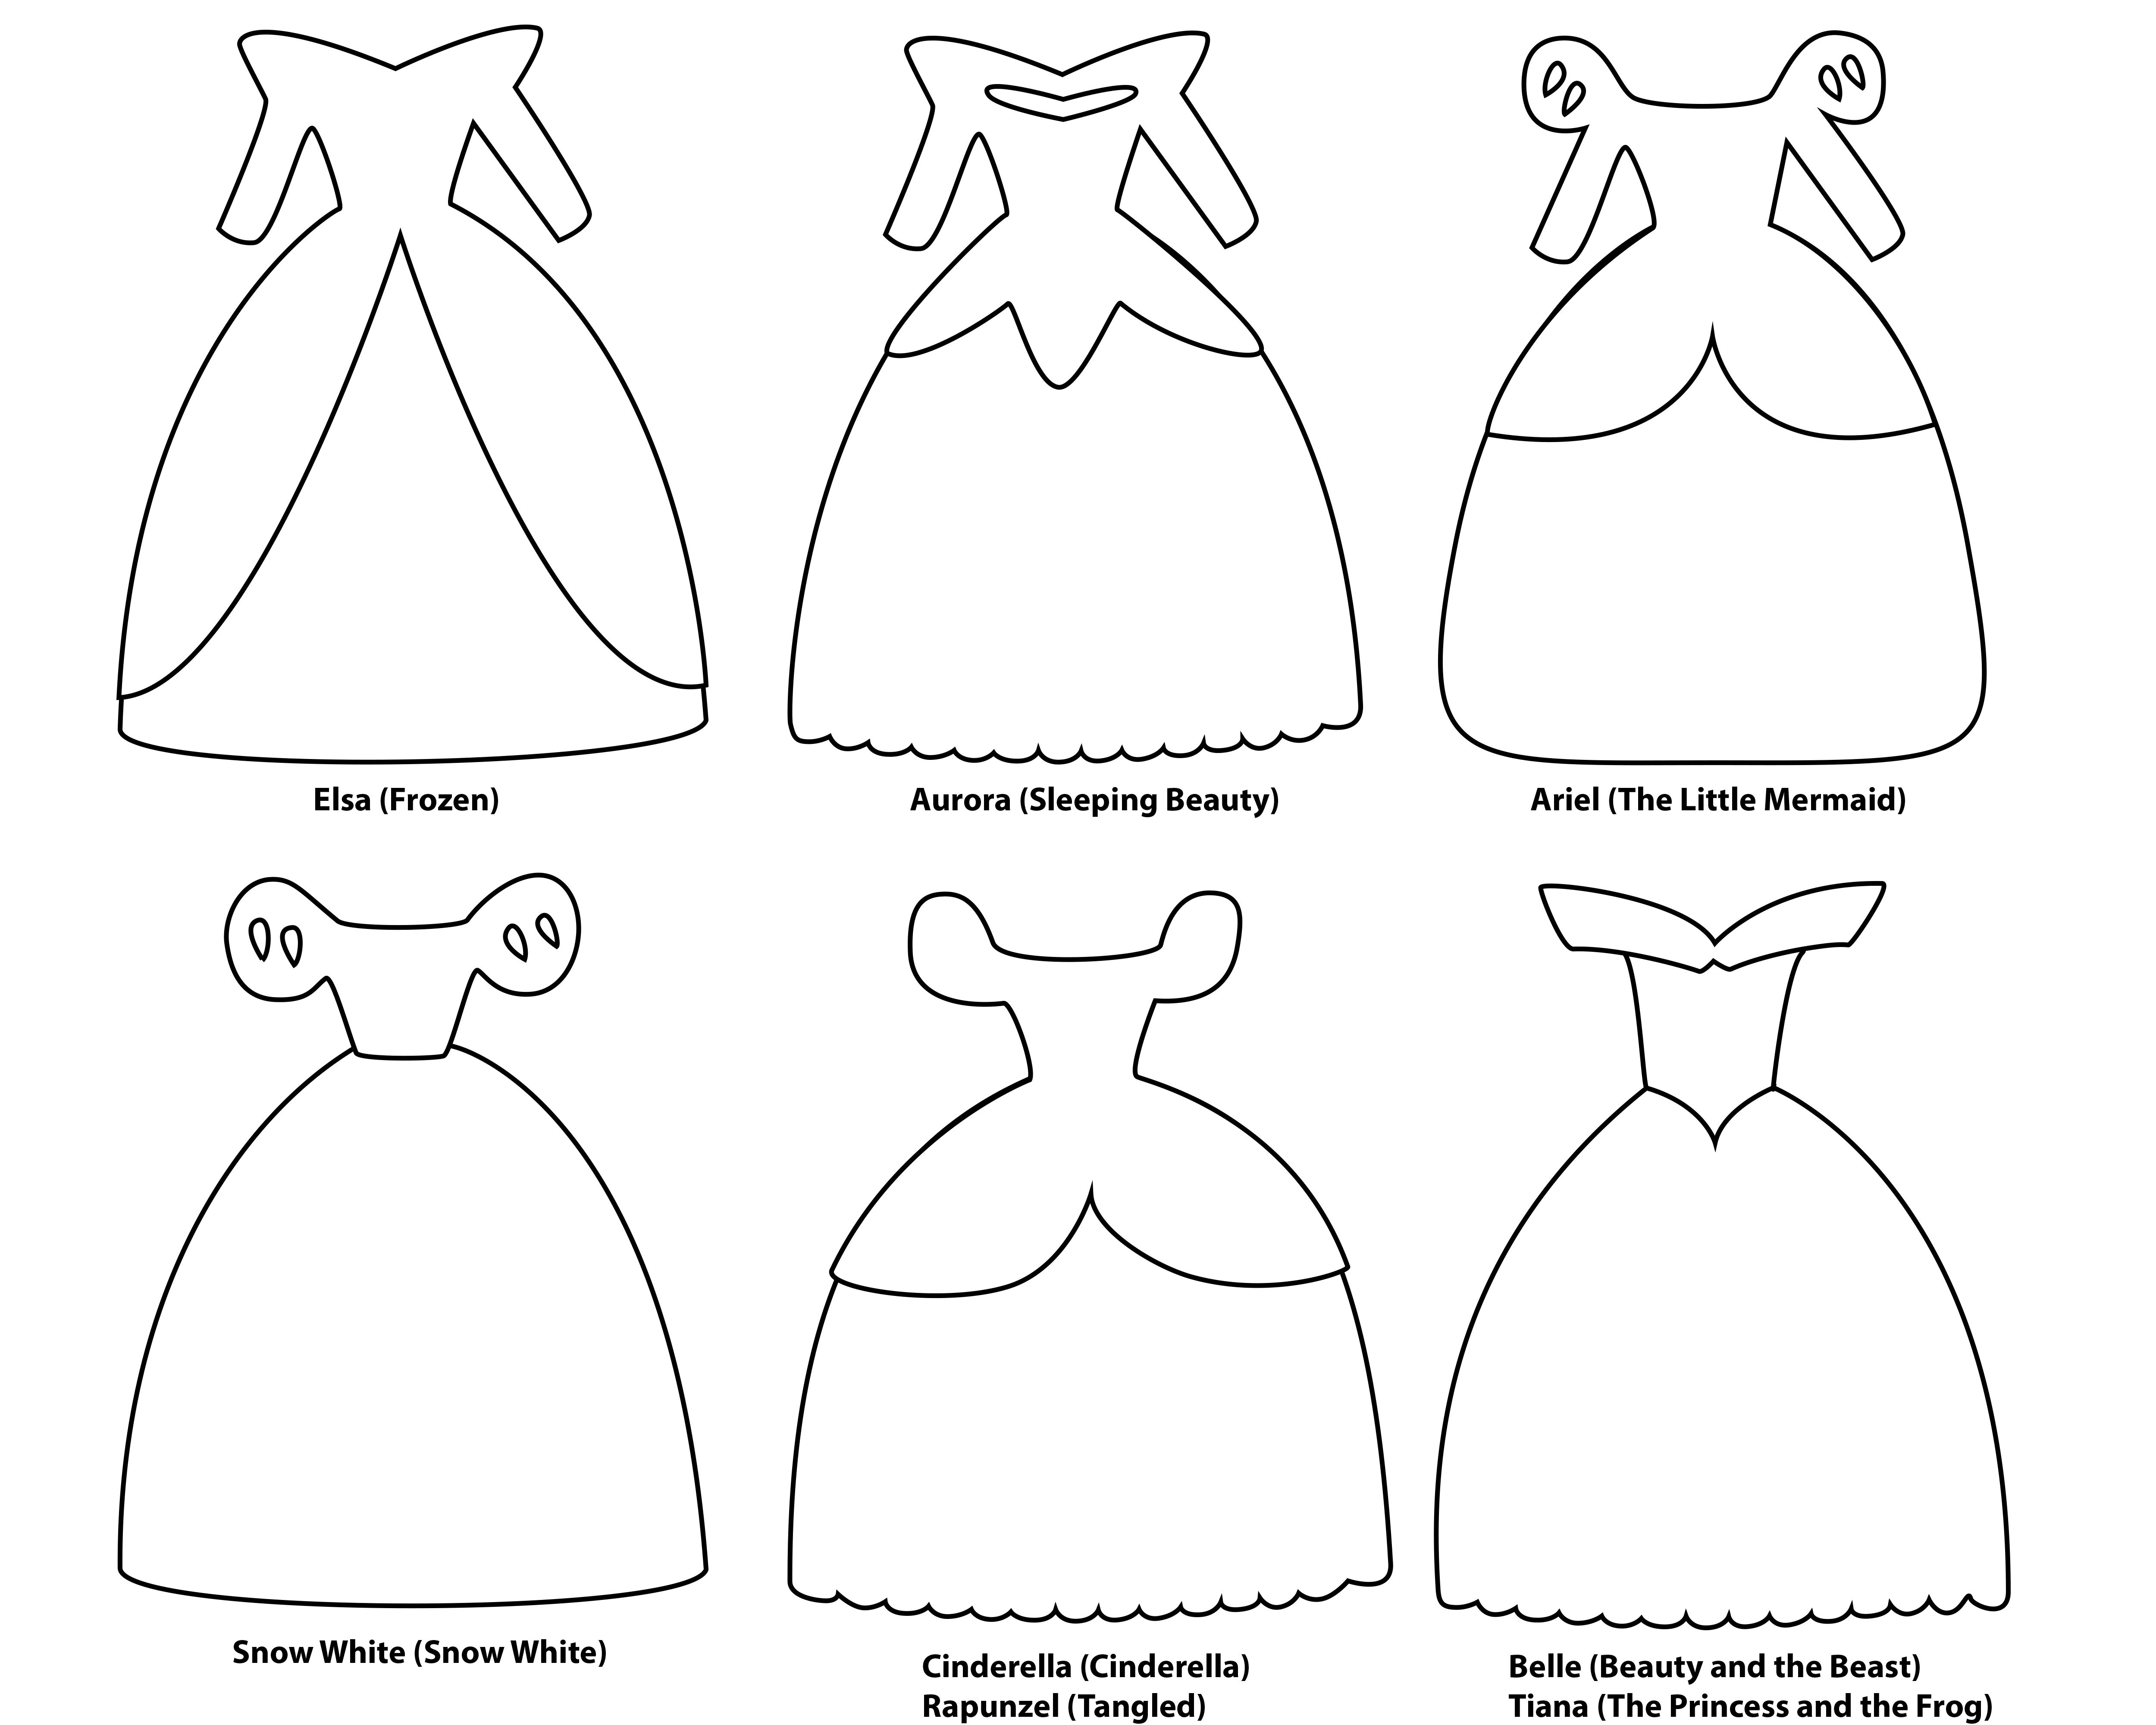 Disney Princess Dress Paper Templates Hot Hands Bakery